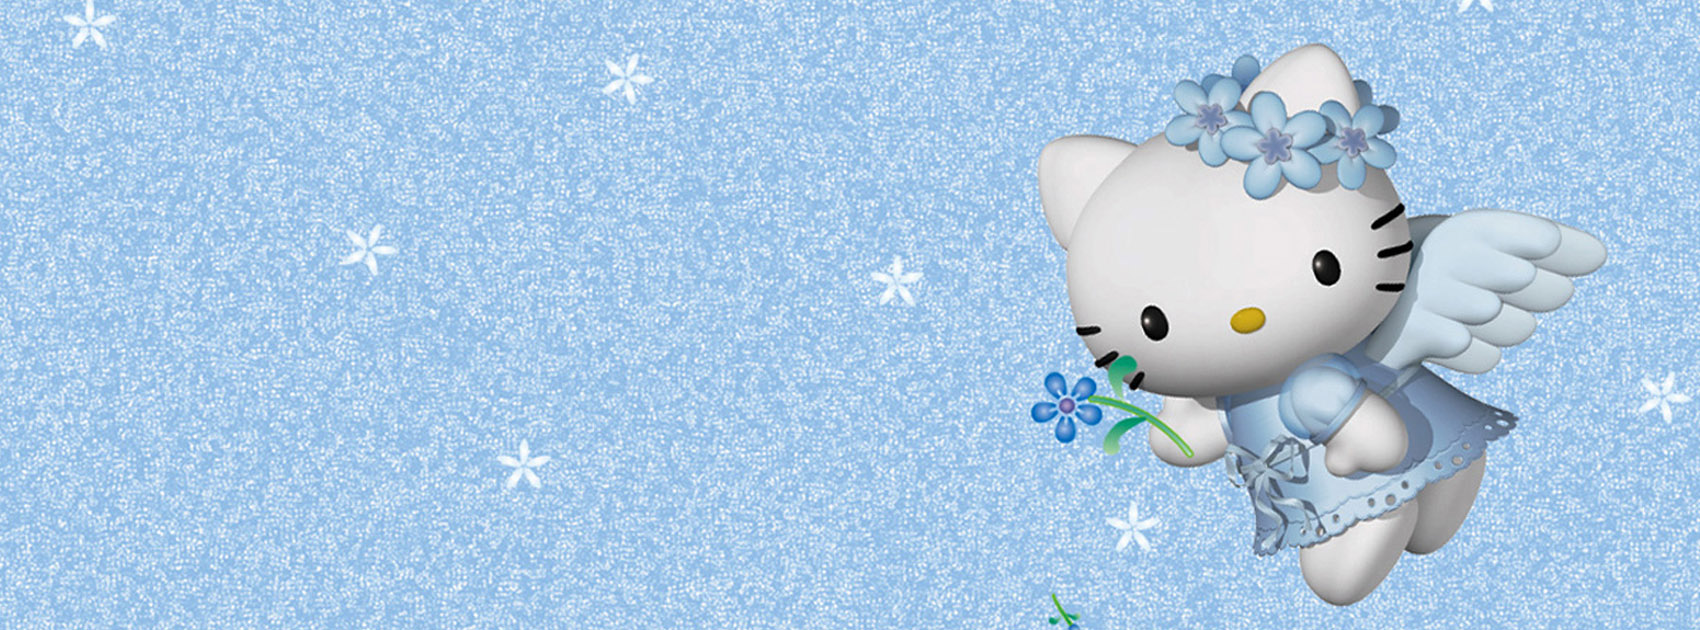 Beautiful Wallpaper Hello Kitty Angel - hello-kitty-blue-angel-facebook-timeline-cover-photo  Graphic_672210.jpg